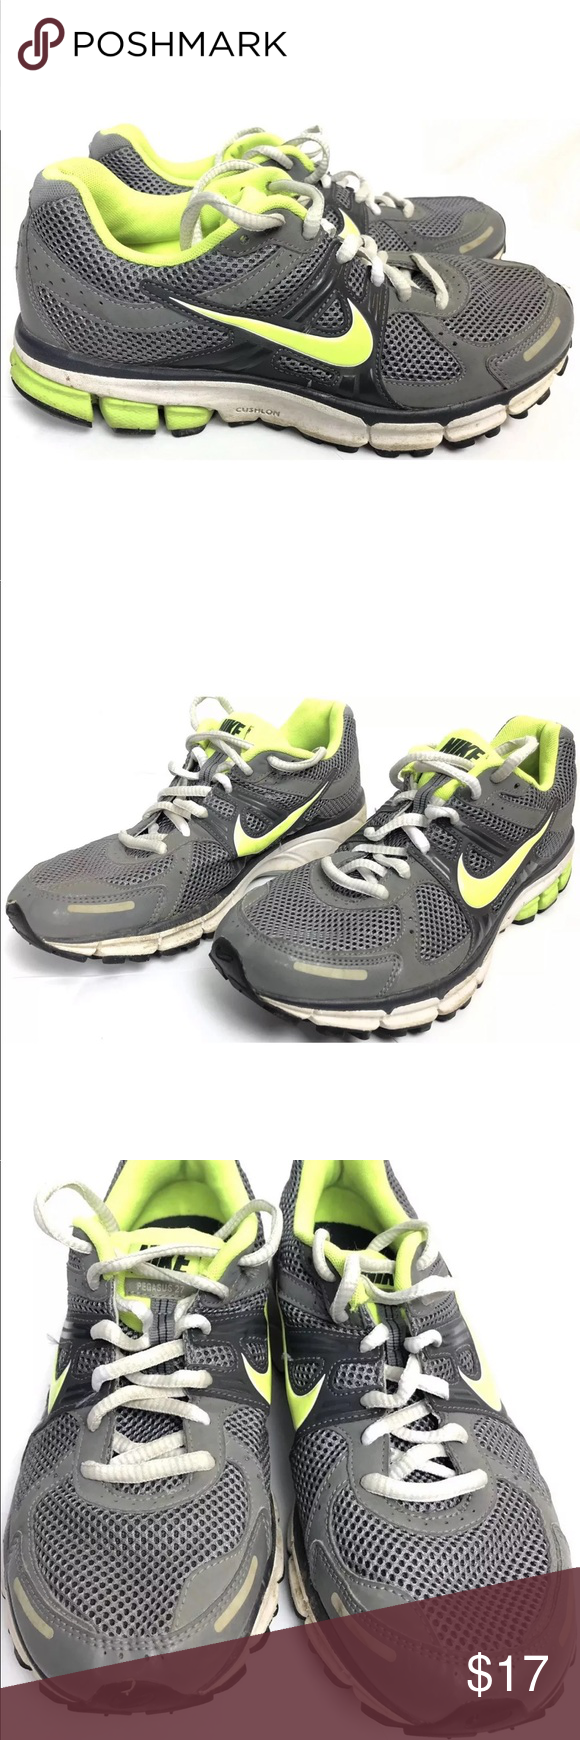 low priced 9d316 661aa Nike Pegasus Womens 7 Boys 5.5Y Running Shoes You are buying a pair of Nike  Air Zoom Pegasus 27 Boys Running Shoes Color Gray Green White Size 5.5 Youth  Or ...